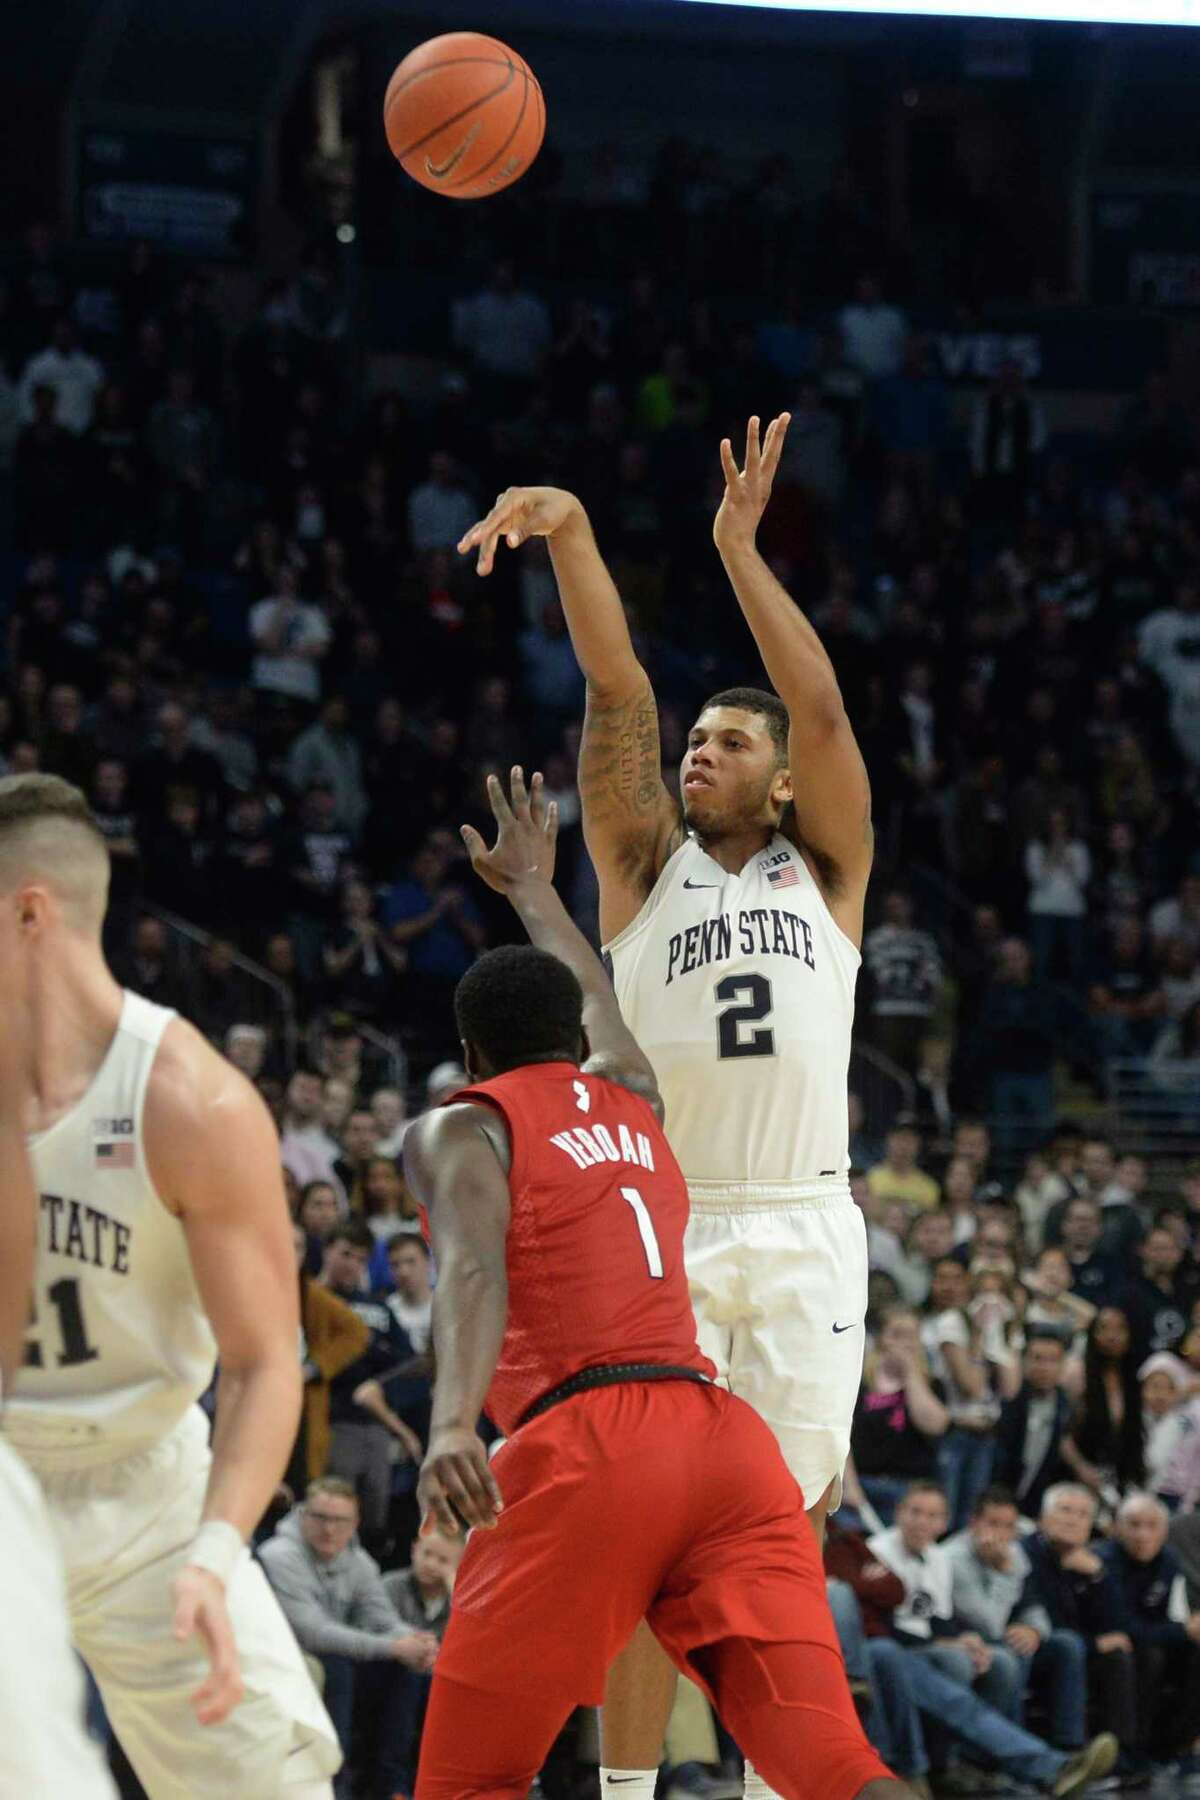 Penn State's Myles Dread's (2) shoots a 3-point basket from the top of key over Rutgers Akwasi Yeboah (1) during the second half of an NCAA college basketball game, Wednesday, Feb. 26, 2020, in State College, Pa. (AP Photo/Gary M. Baranec)